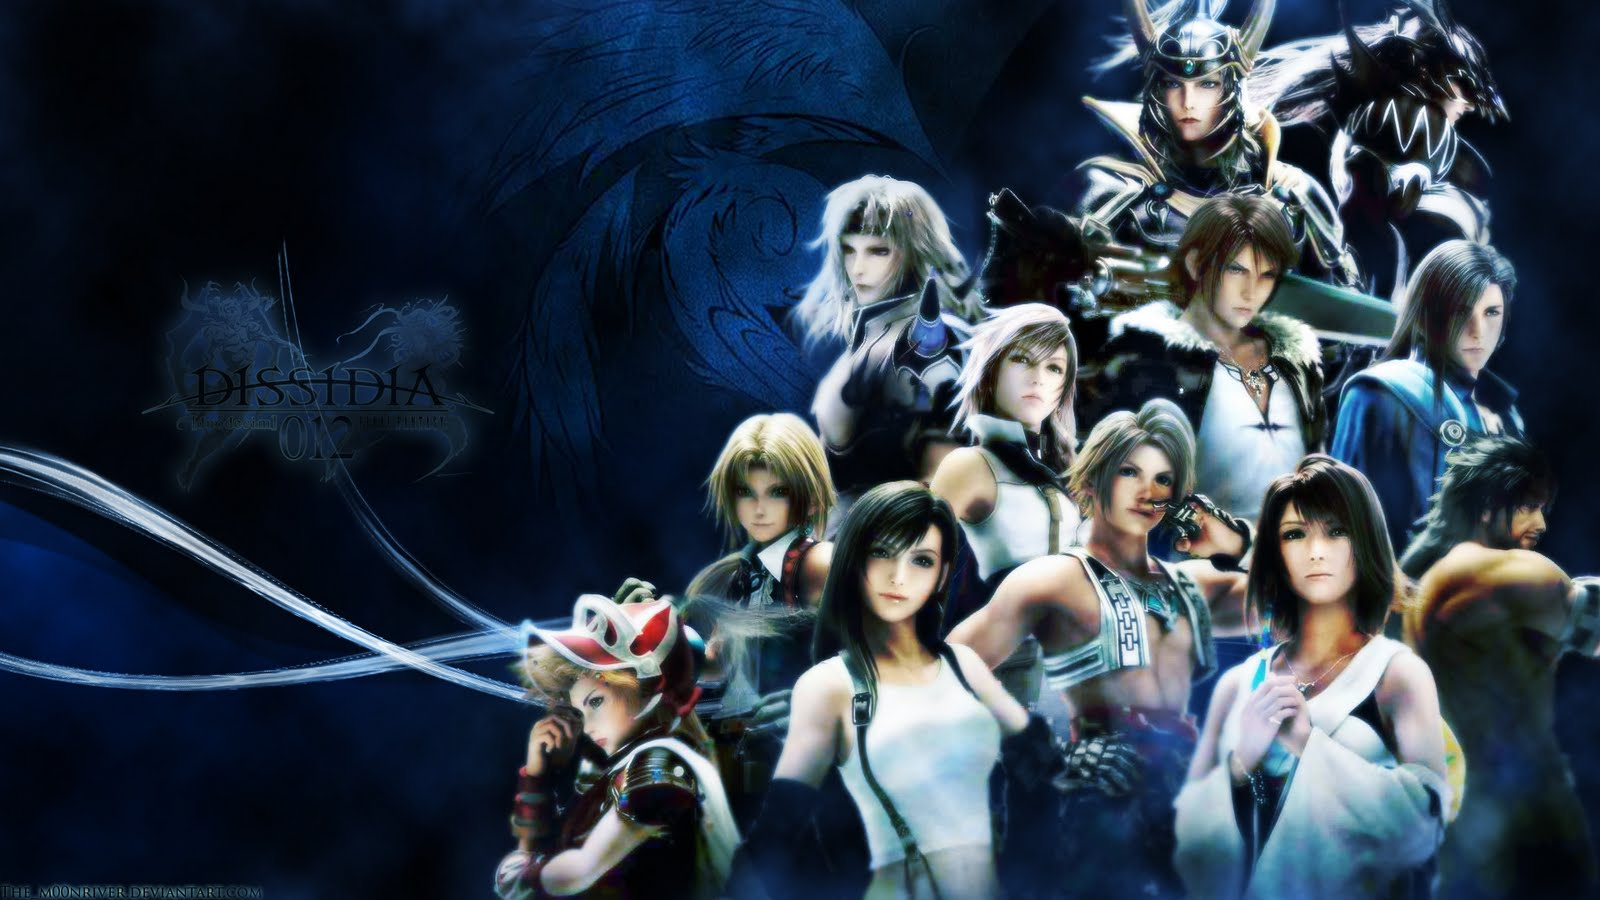 The Nibelheim Post My Roster For Dissidia 3